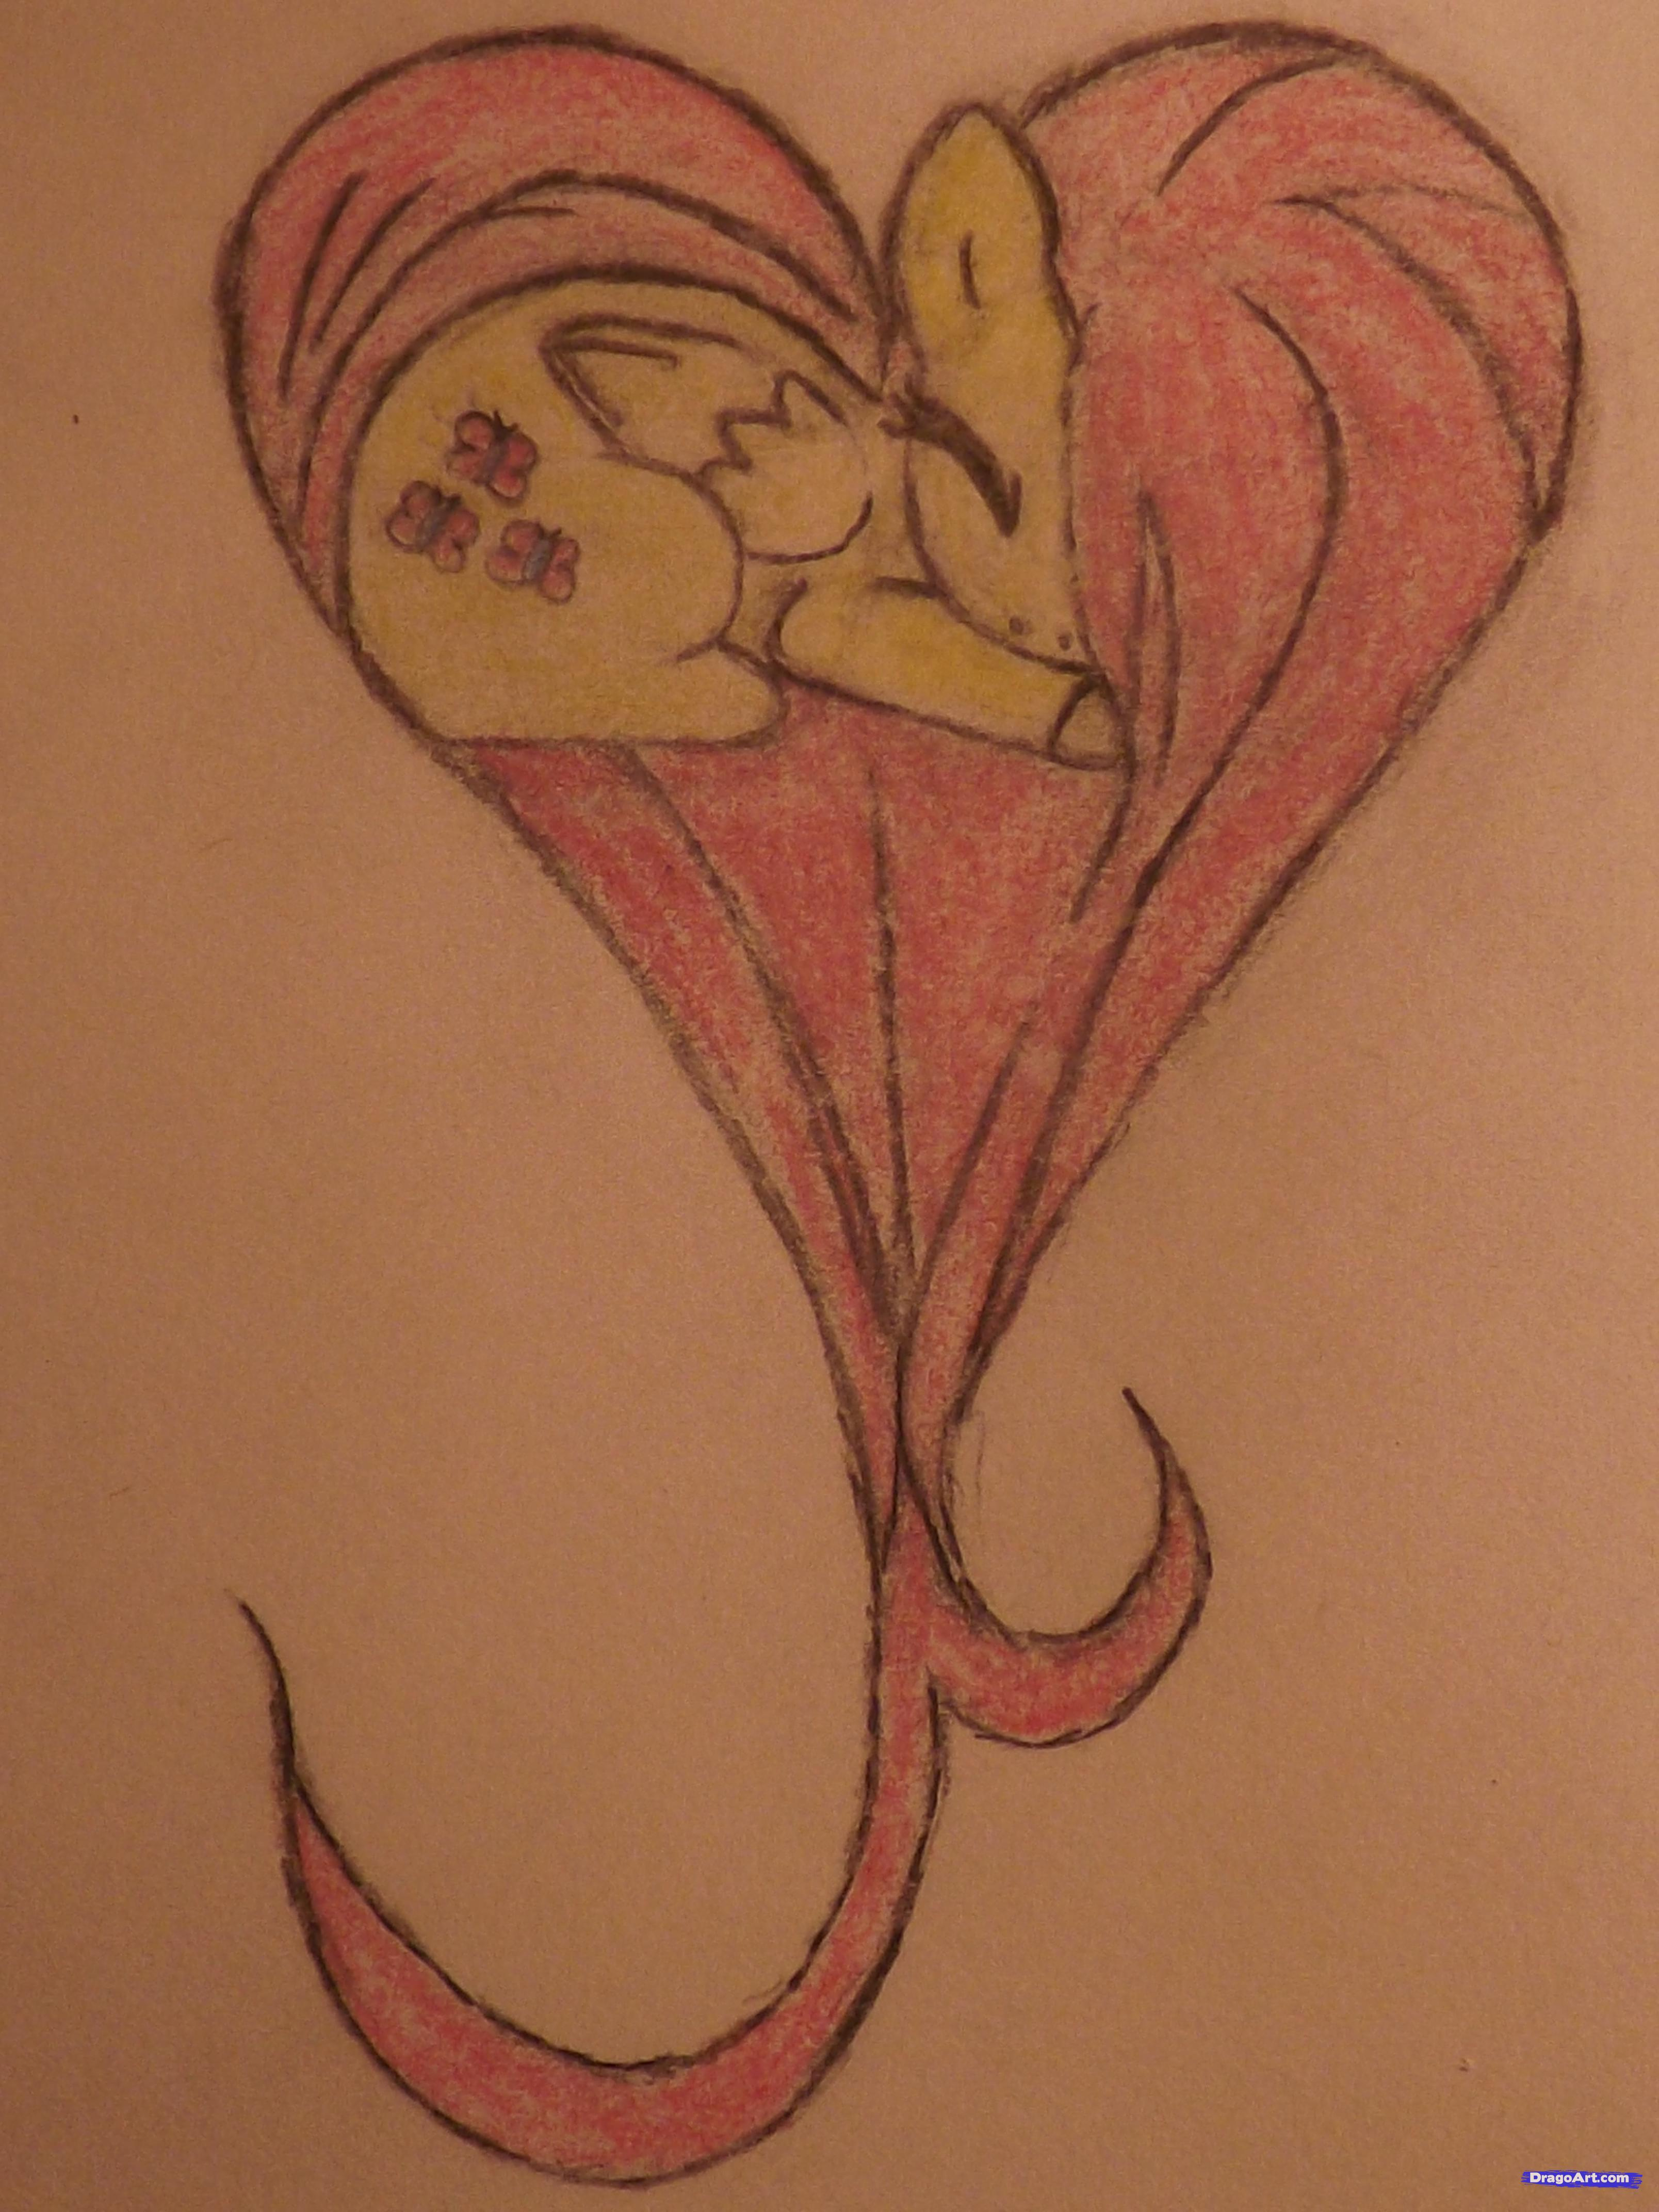 Drawn my little pony snooty How how draw heart fluttershy